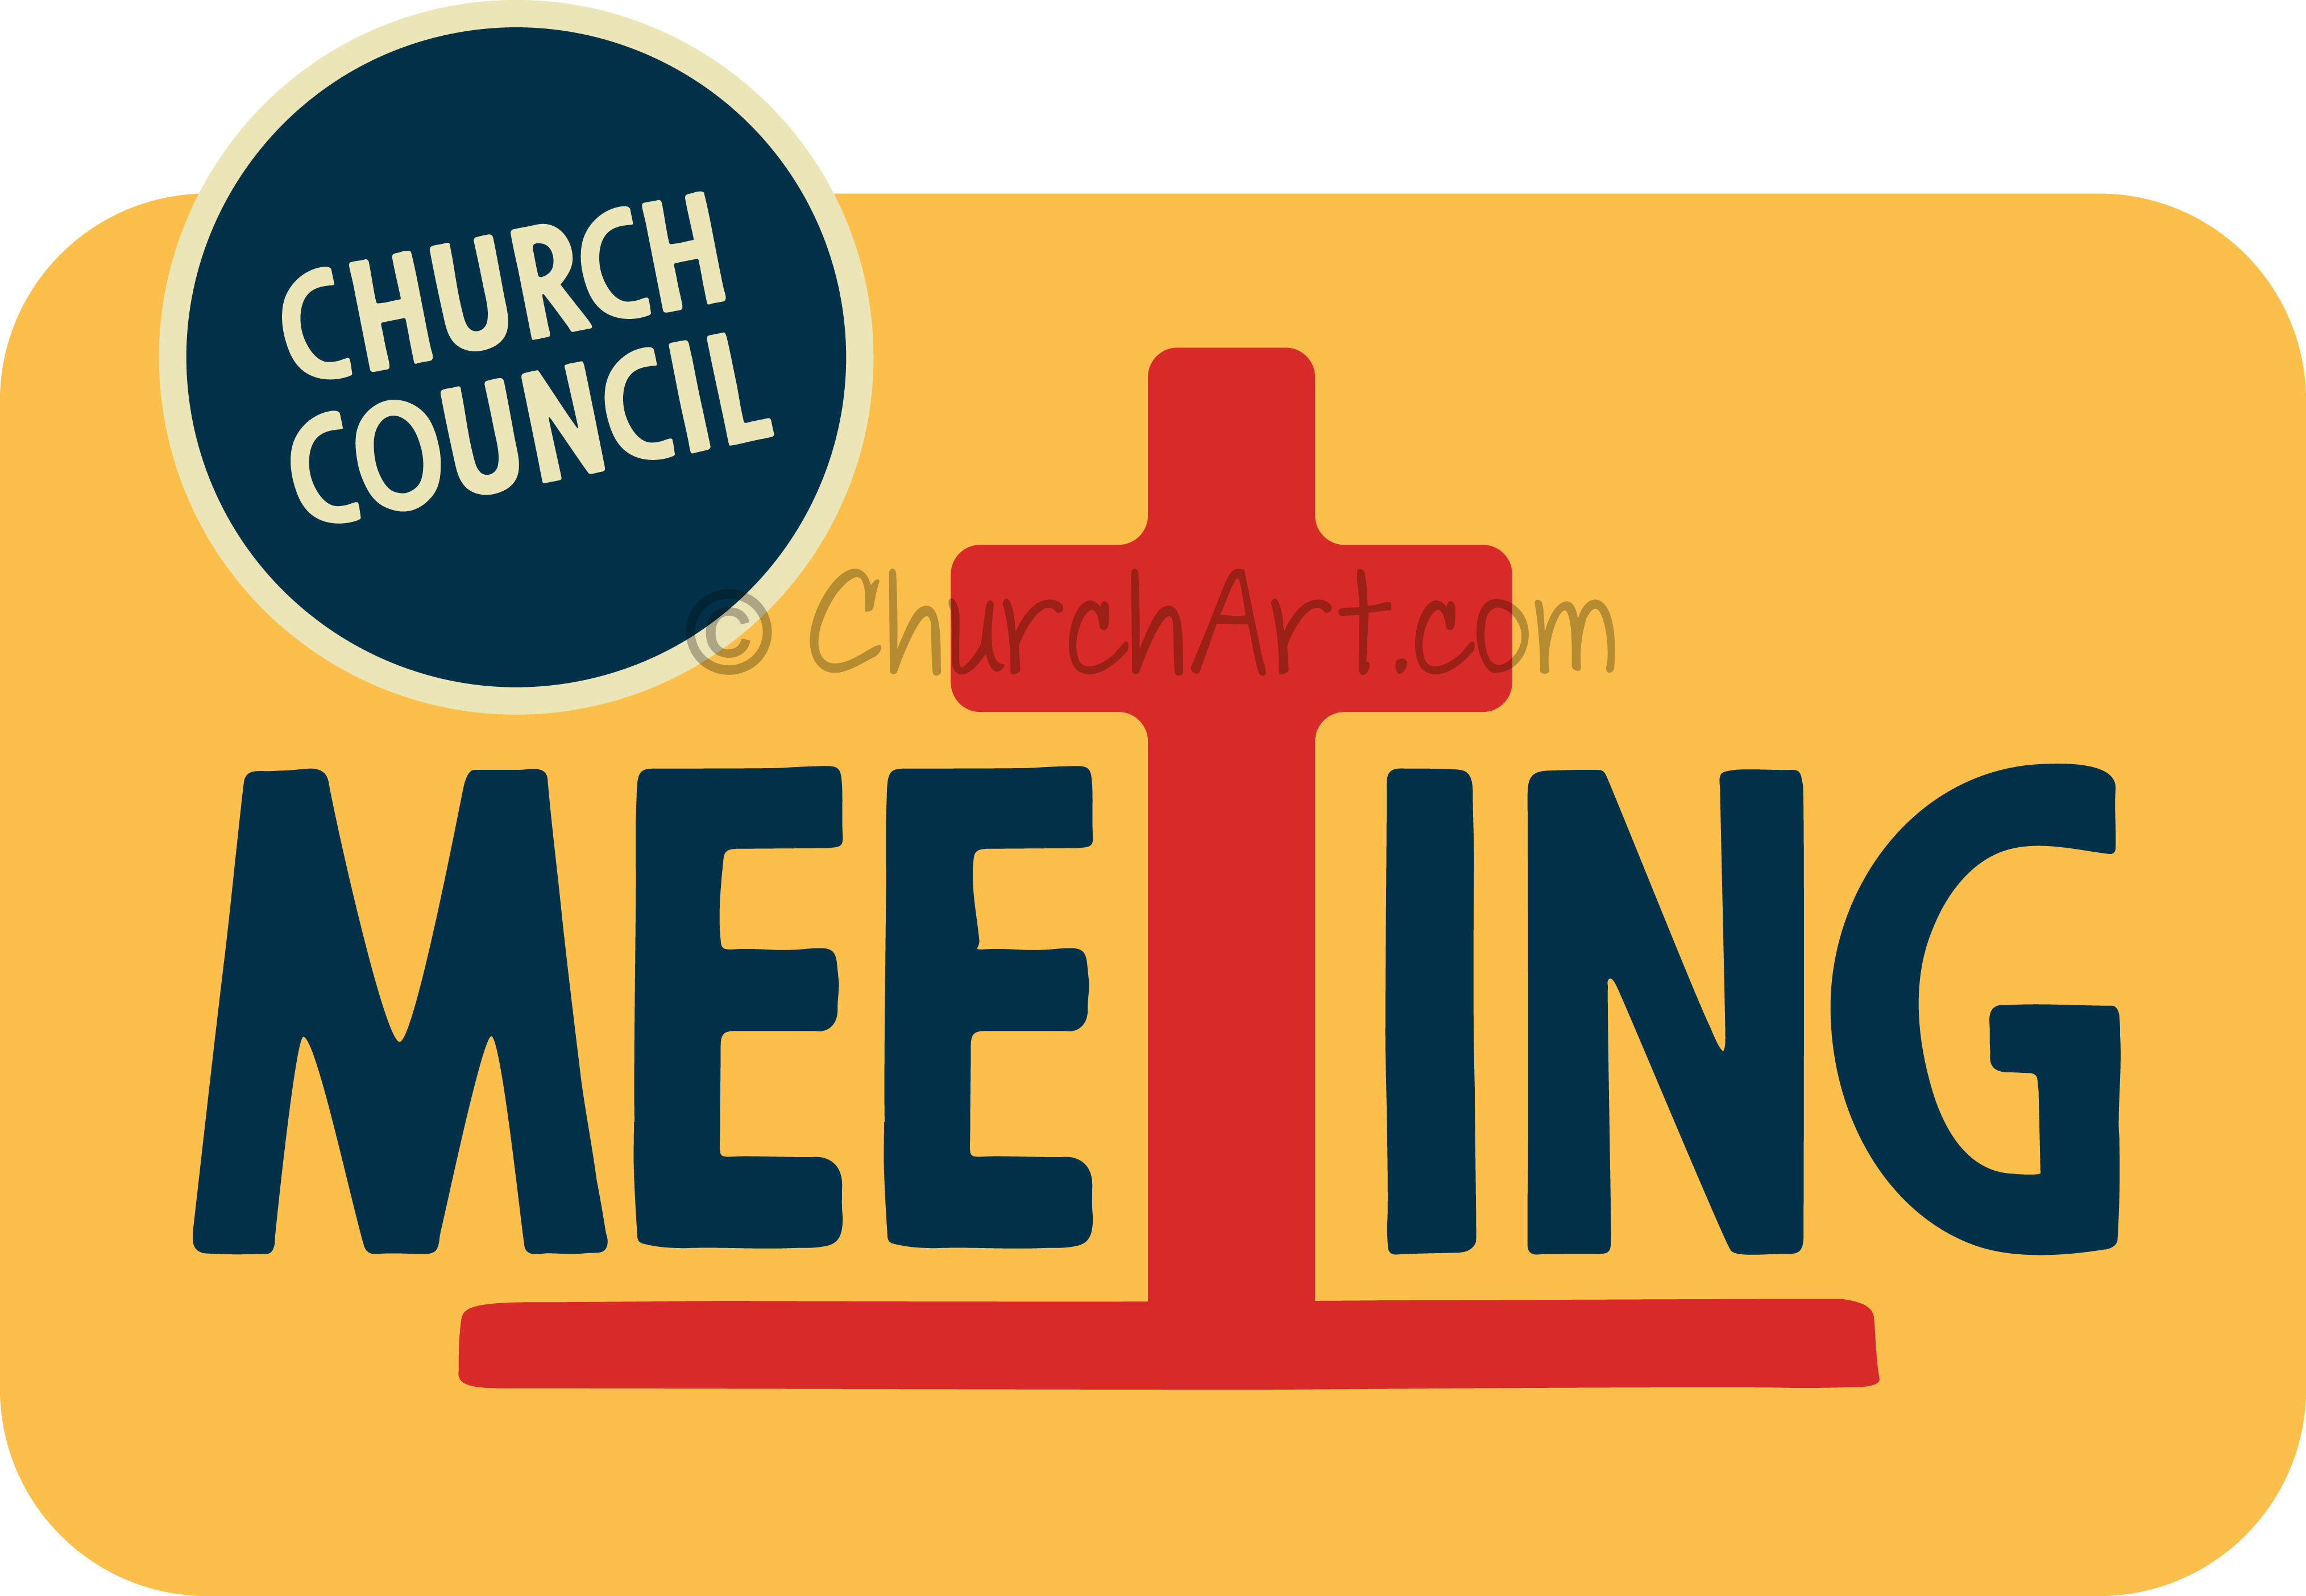 Church Council clipart image for an upcoming church council meeting announcement in church bulletin, church calendar or church newsletter featuring cross